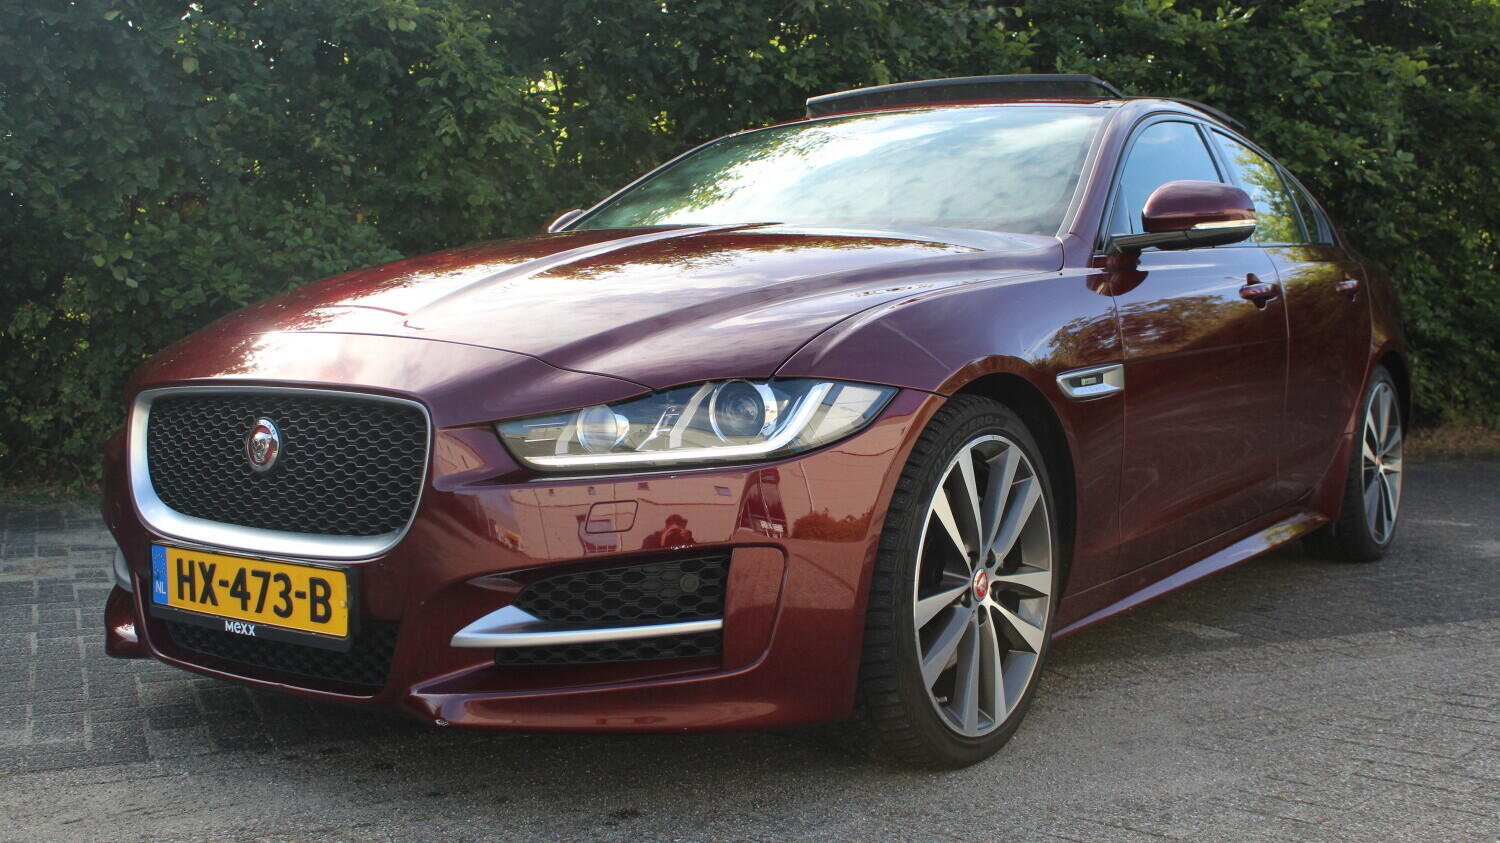 Jaguar XE Sedan 2015 HX-473-B 1